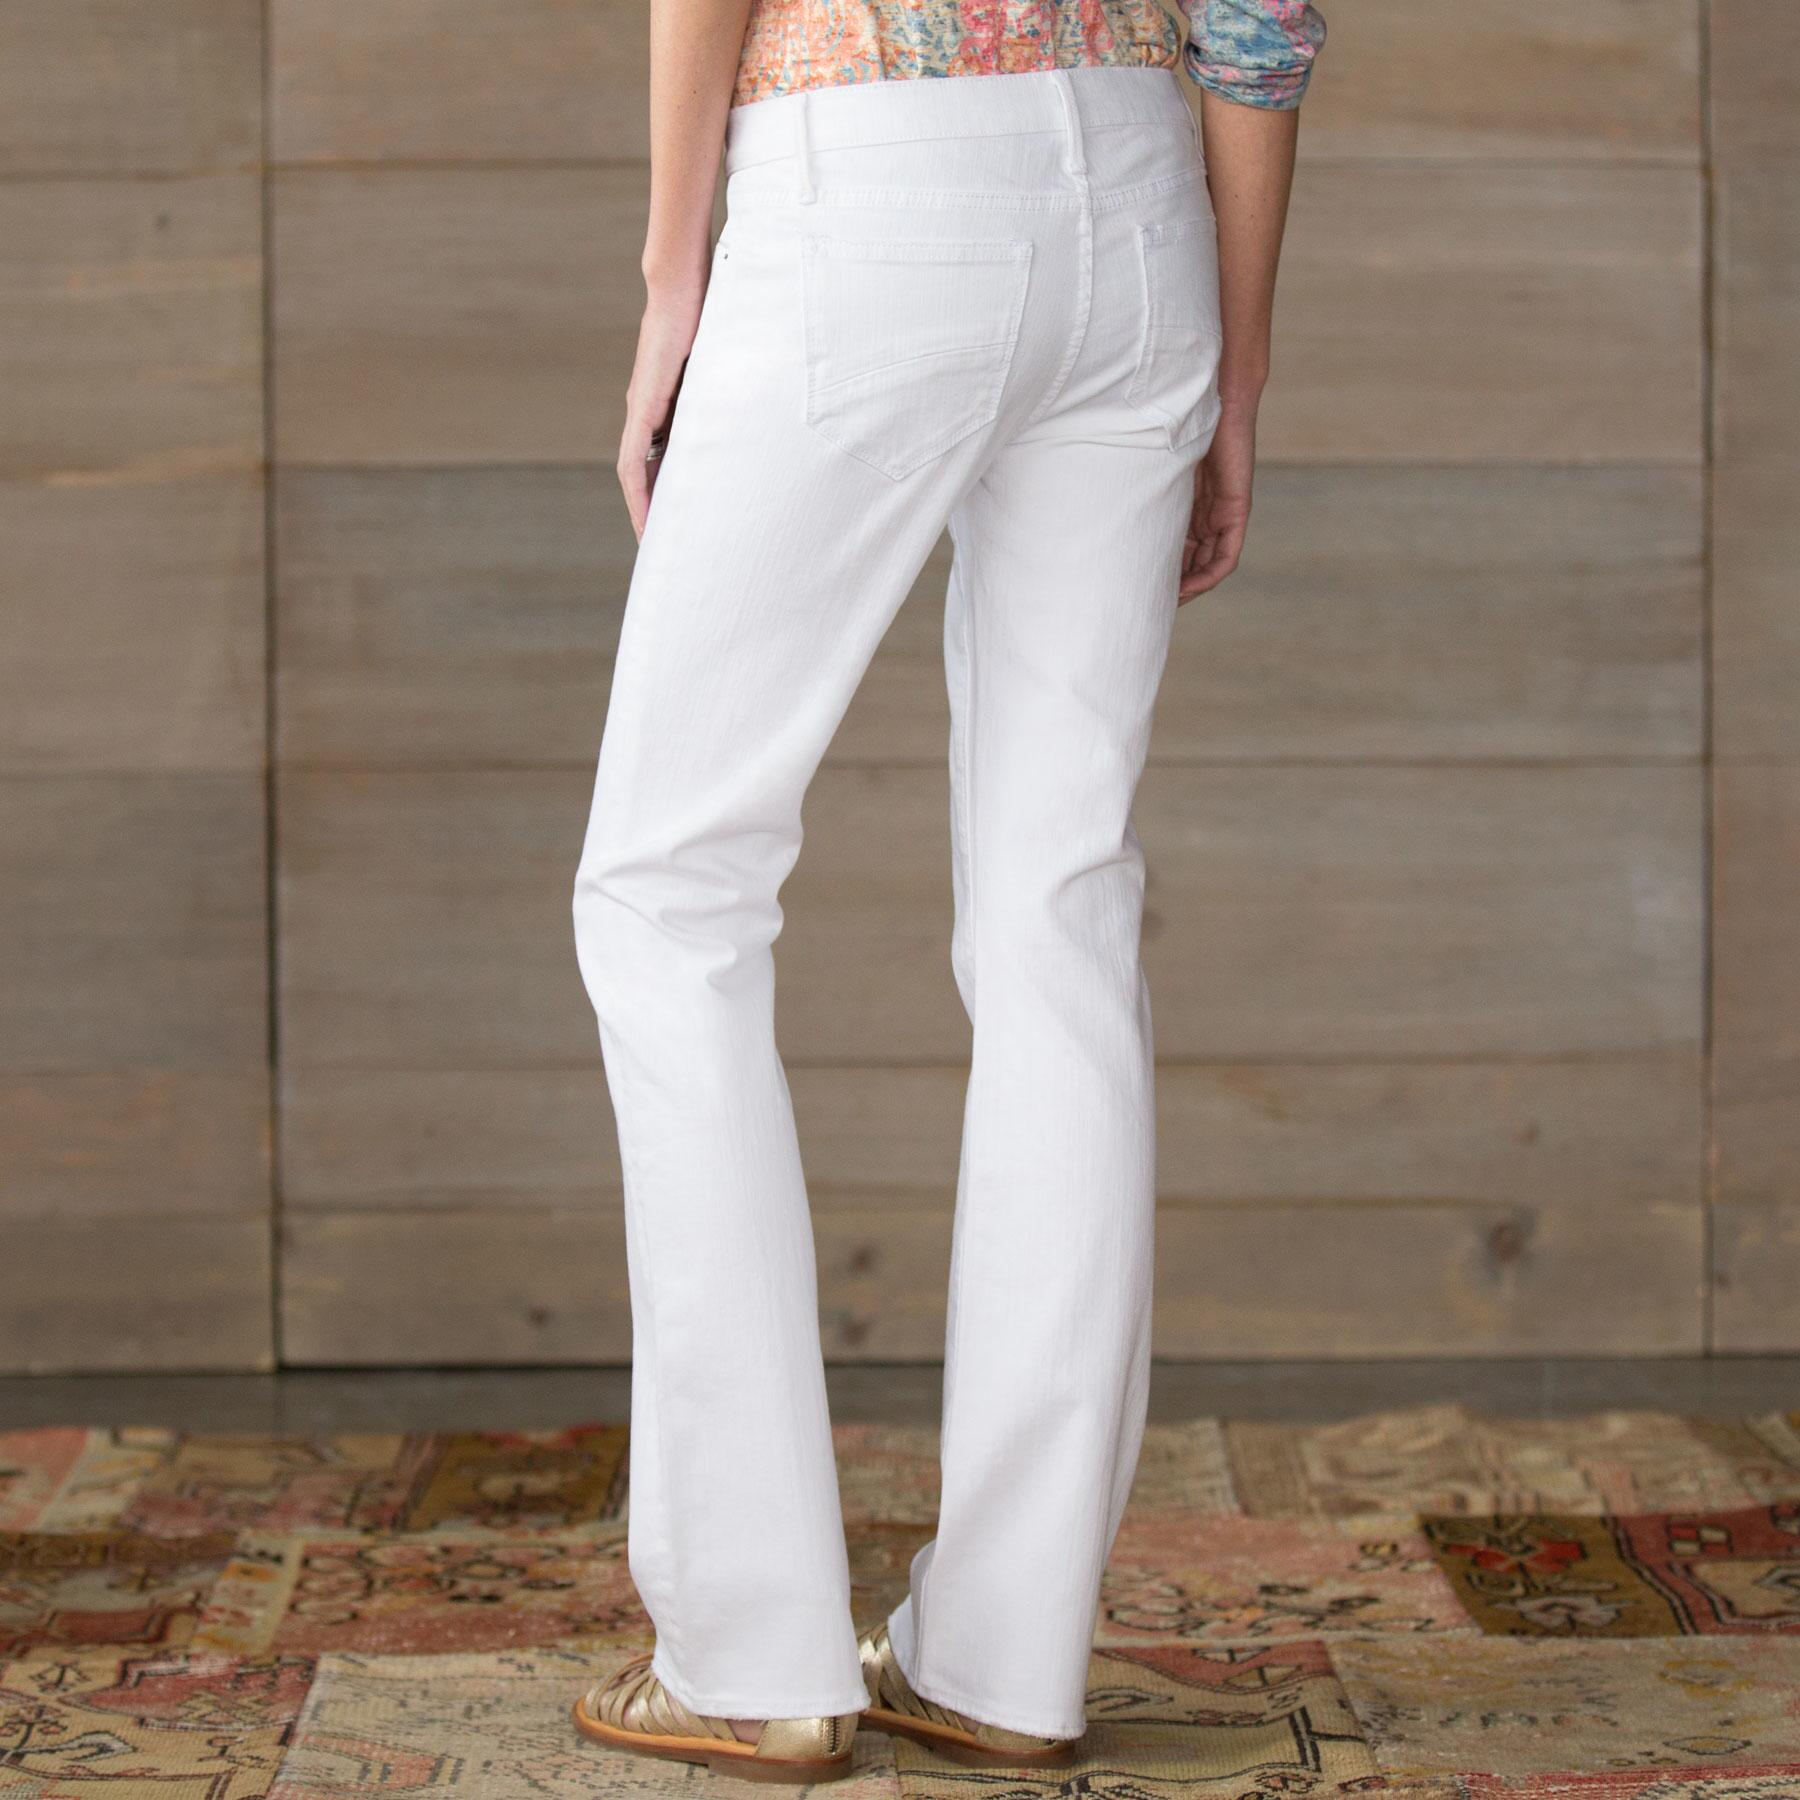 KELLY JEANS BY DRIFTWOOD: View 2